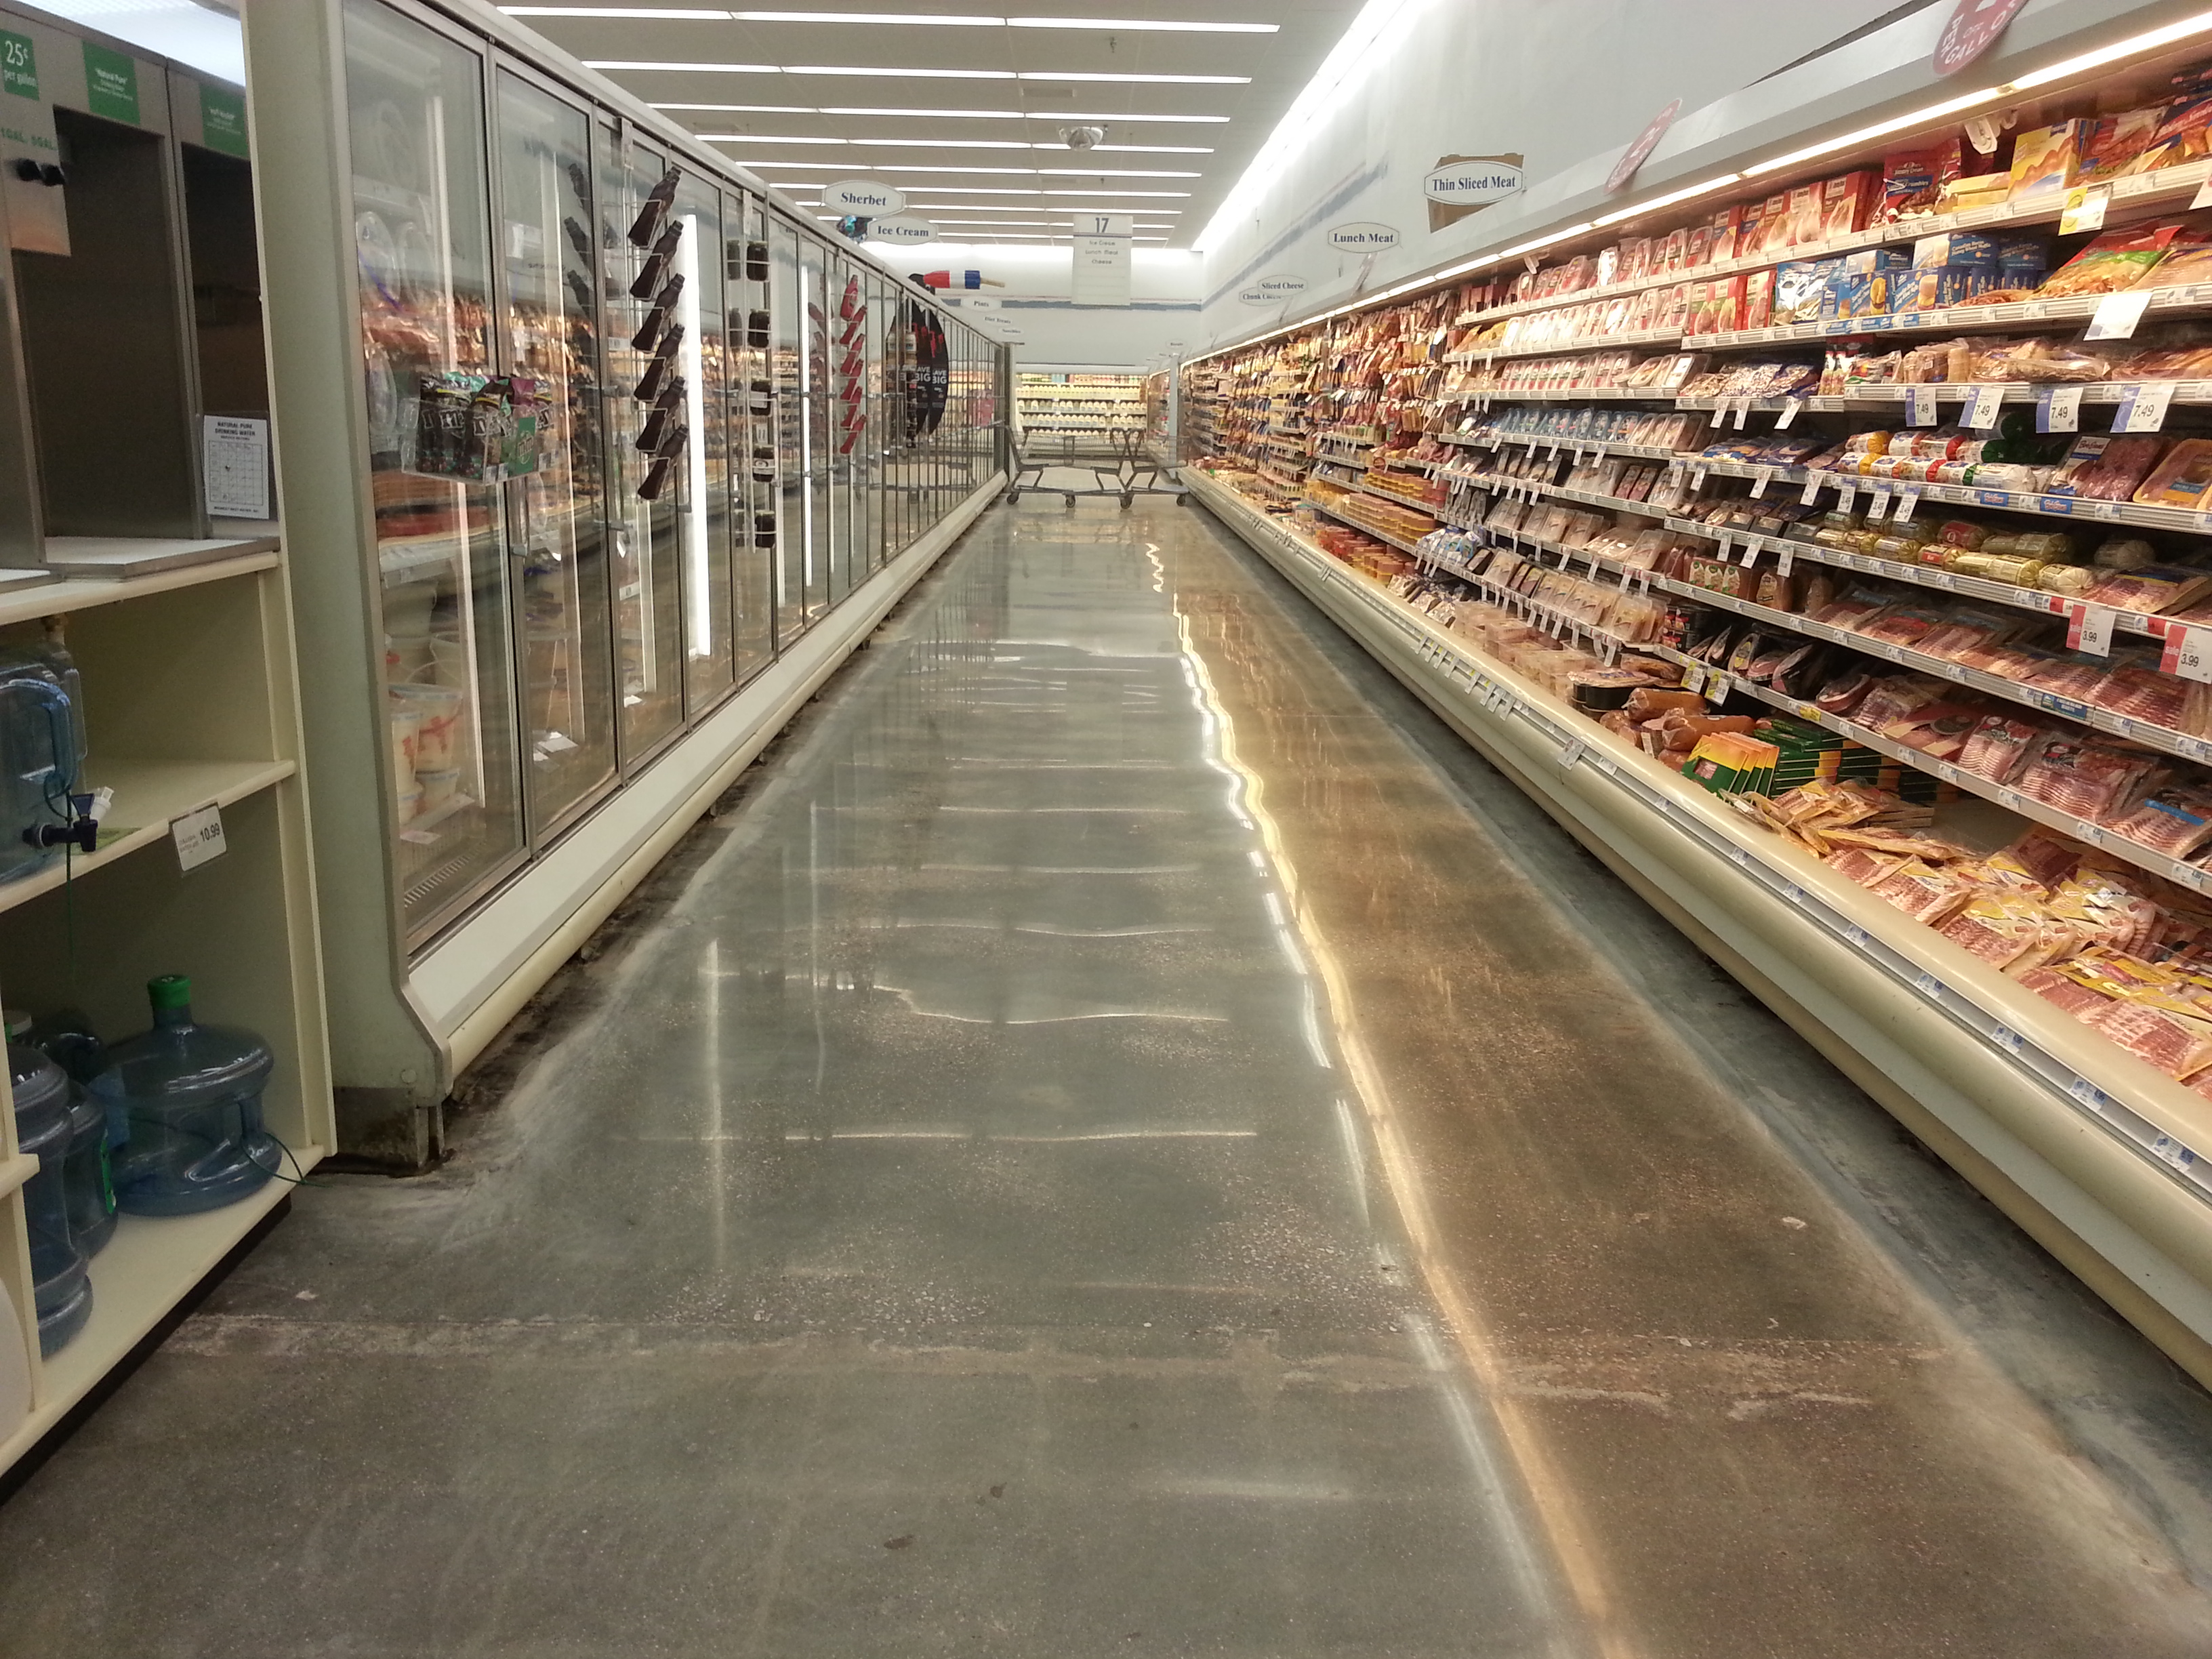 Polishmaxx polished concrete contractor in iowaillinois vct vct vinyl composition tile tile removal on a grocery store floor with no edge dailygadgetfo Gallery